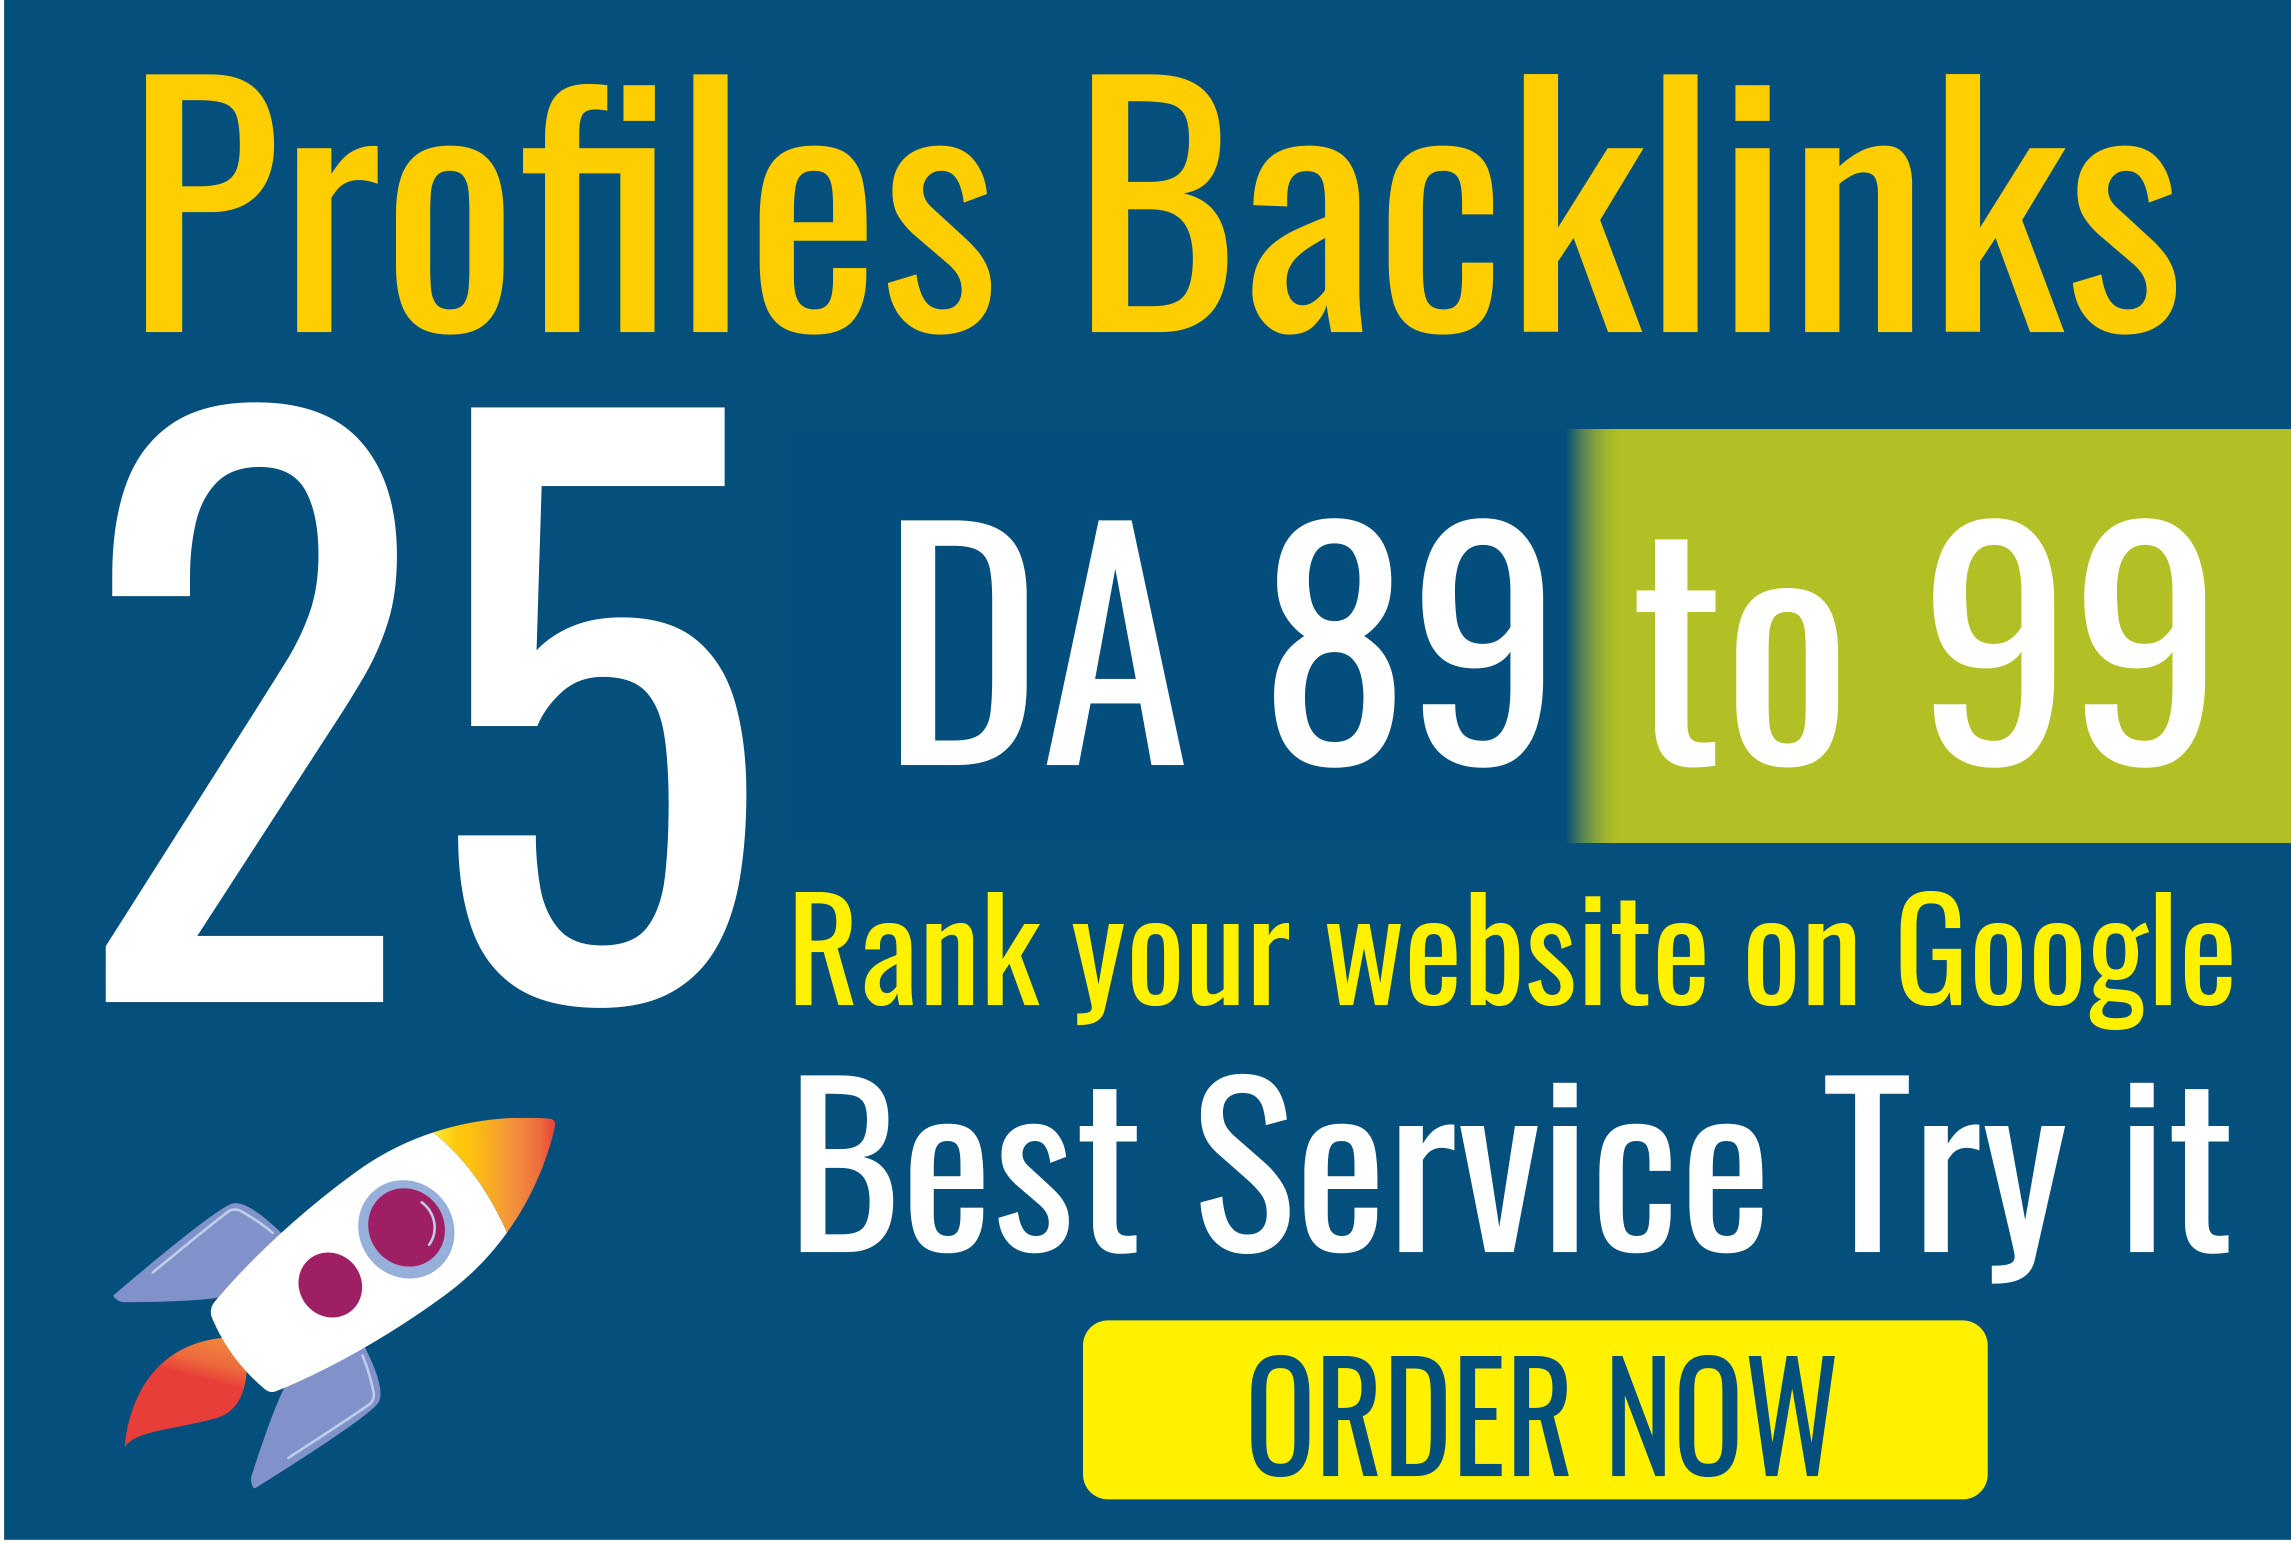 I will register 25 profiles backlinks on websites with high DA authority Linkbuilding and get free